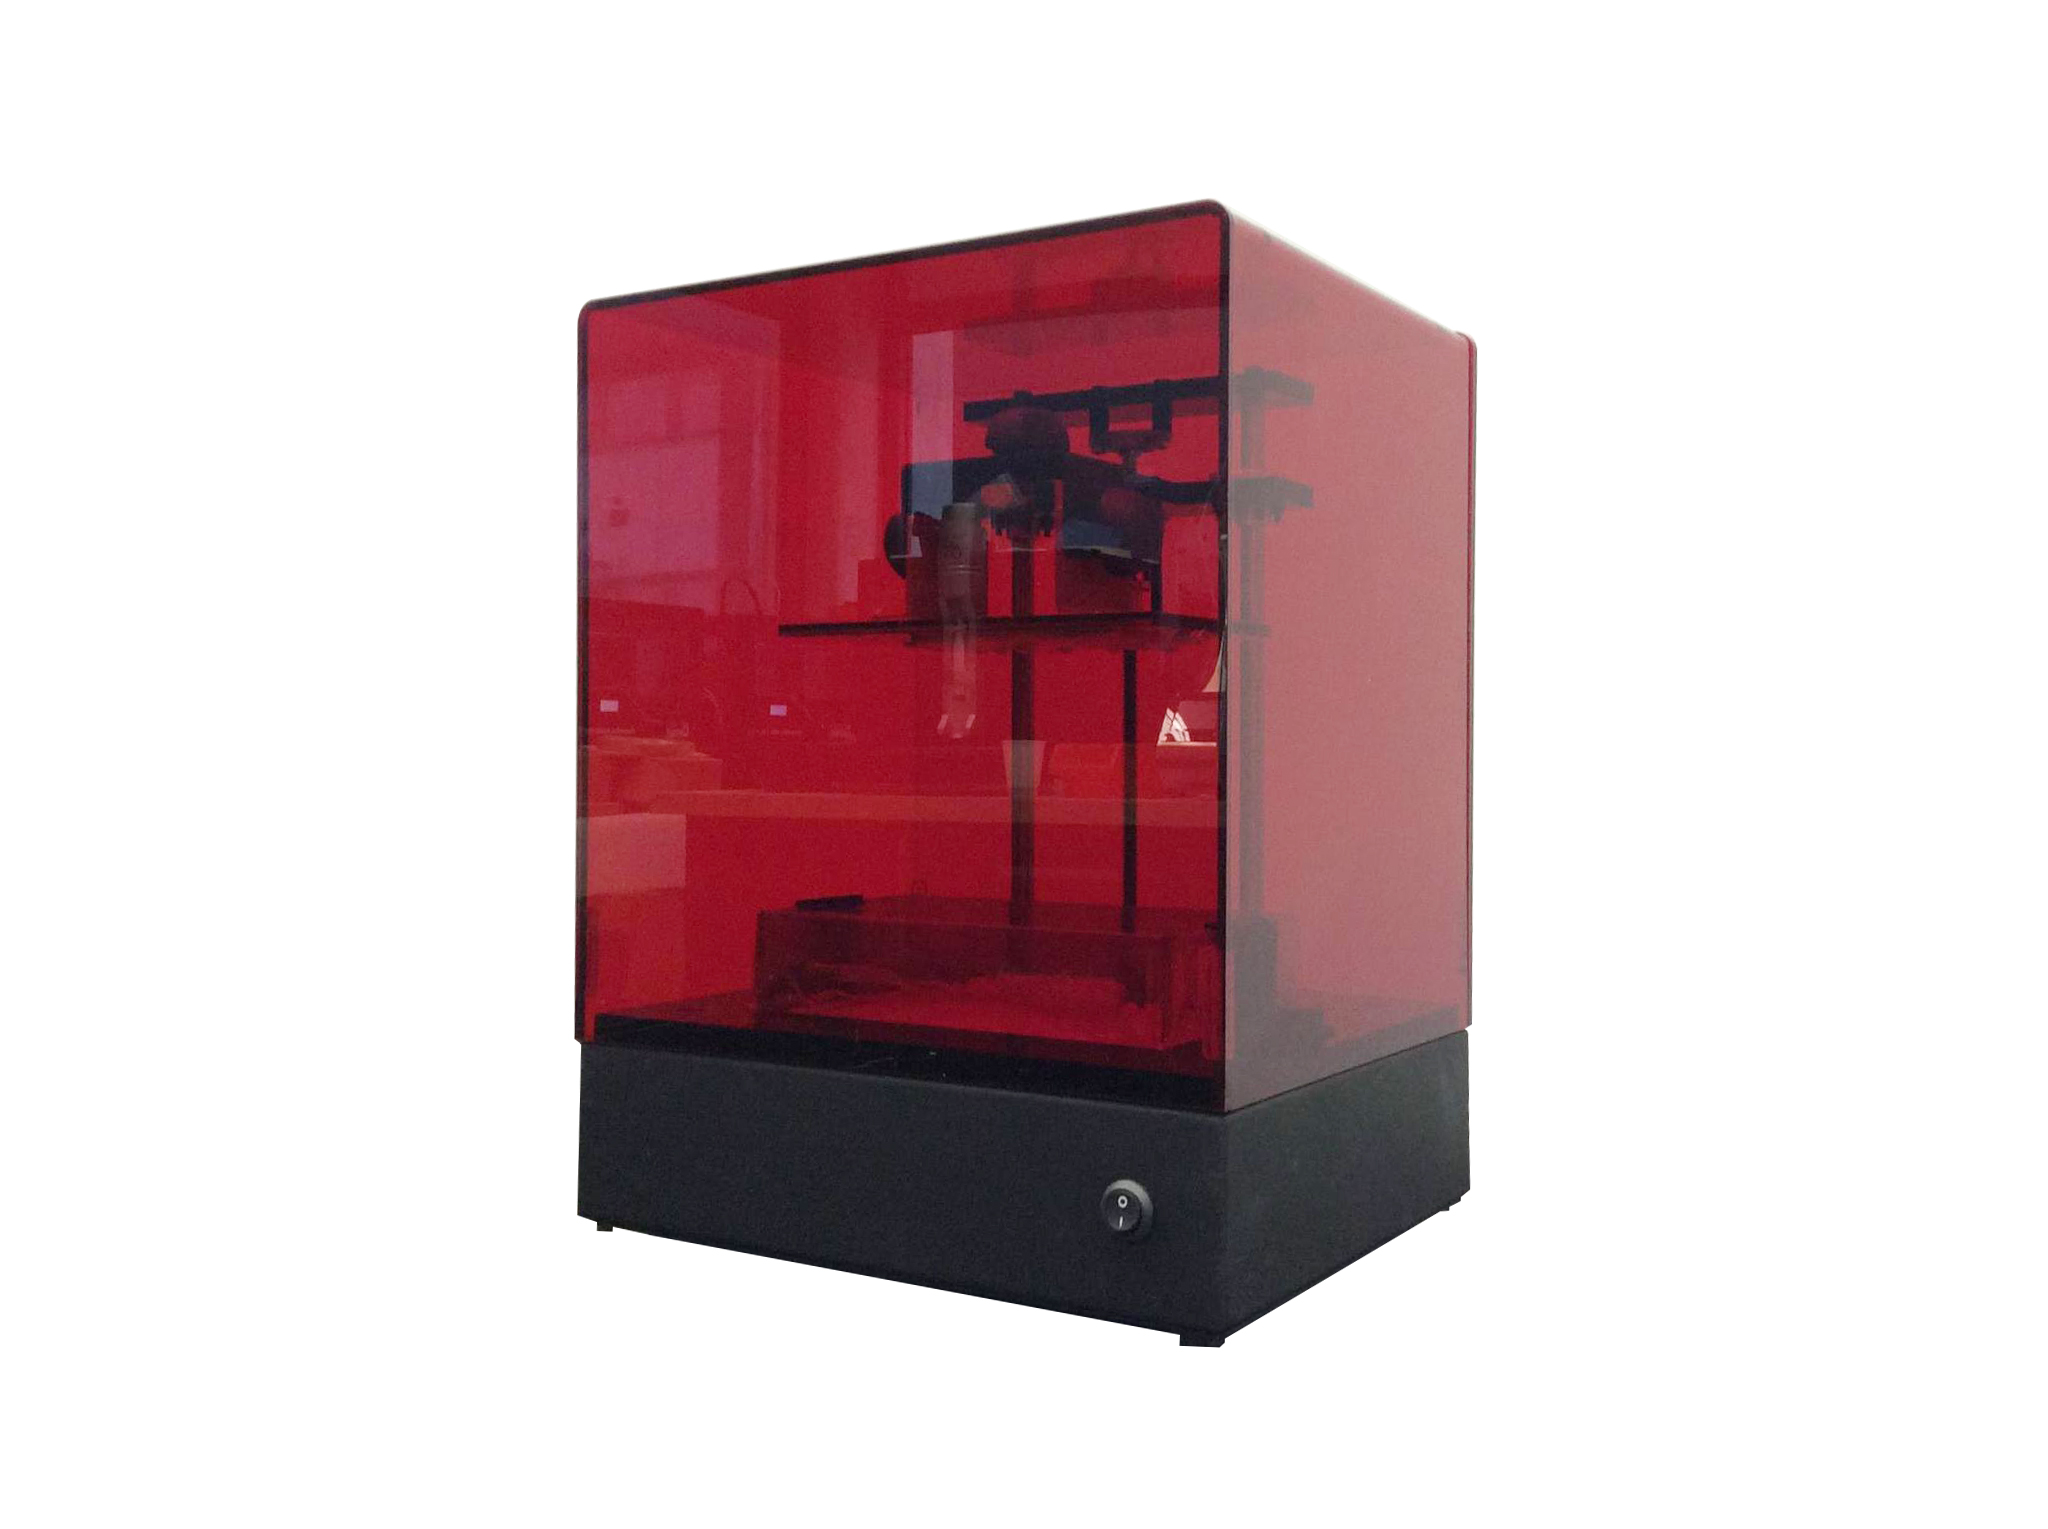 Imprimante Liquid crystal – boutique en ligne imprimante 3d Liquid crystal – machines-3d